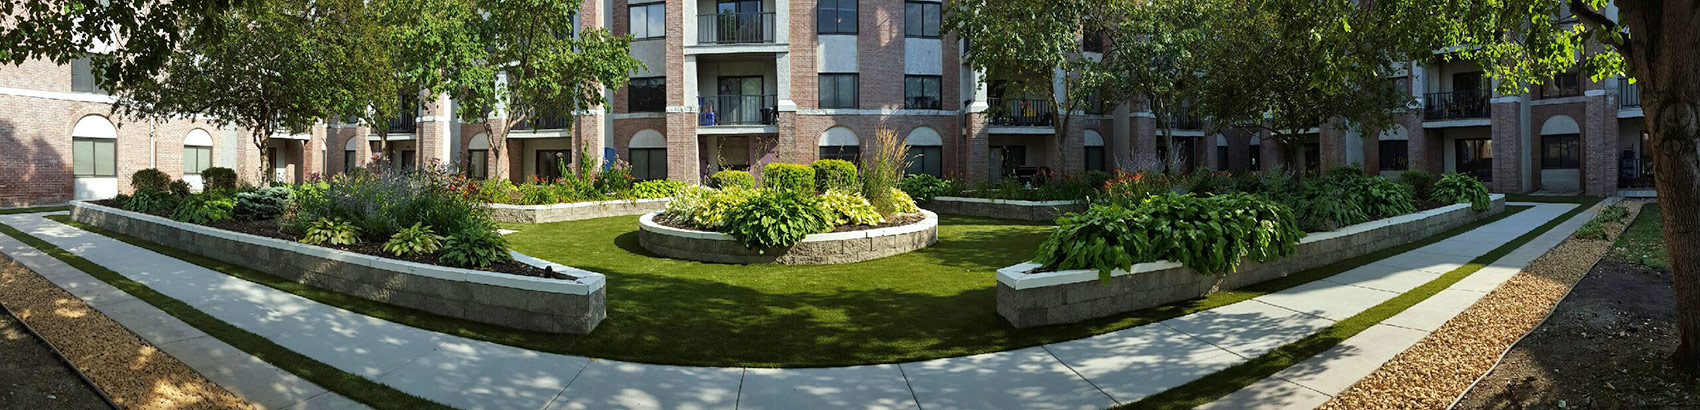 Smart Lawn Example